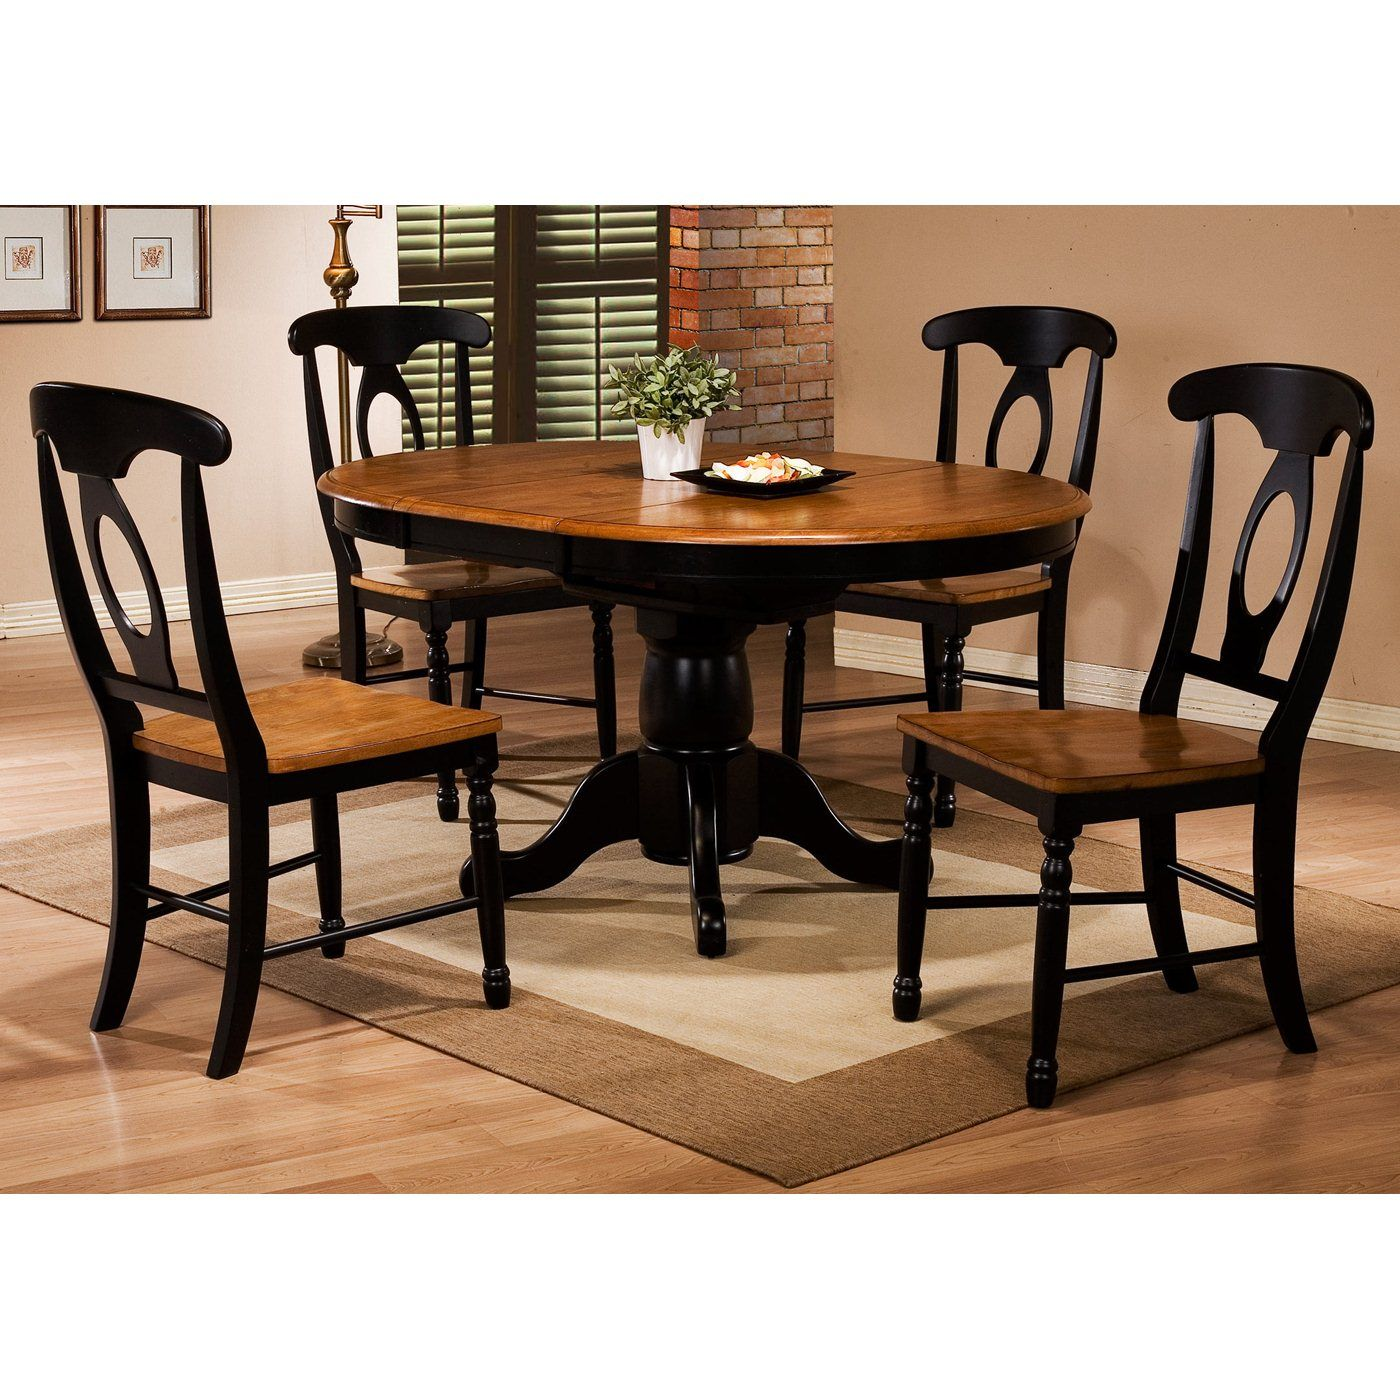 run tables from leg small table furniture winners quails quail dining room